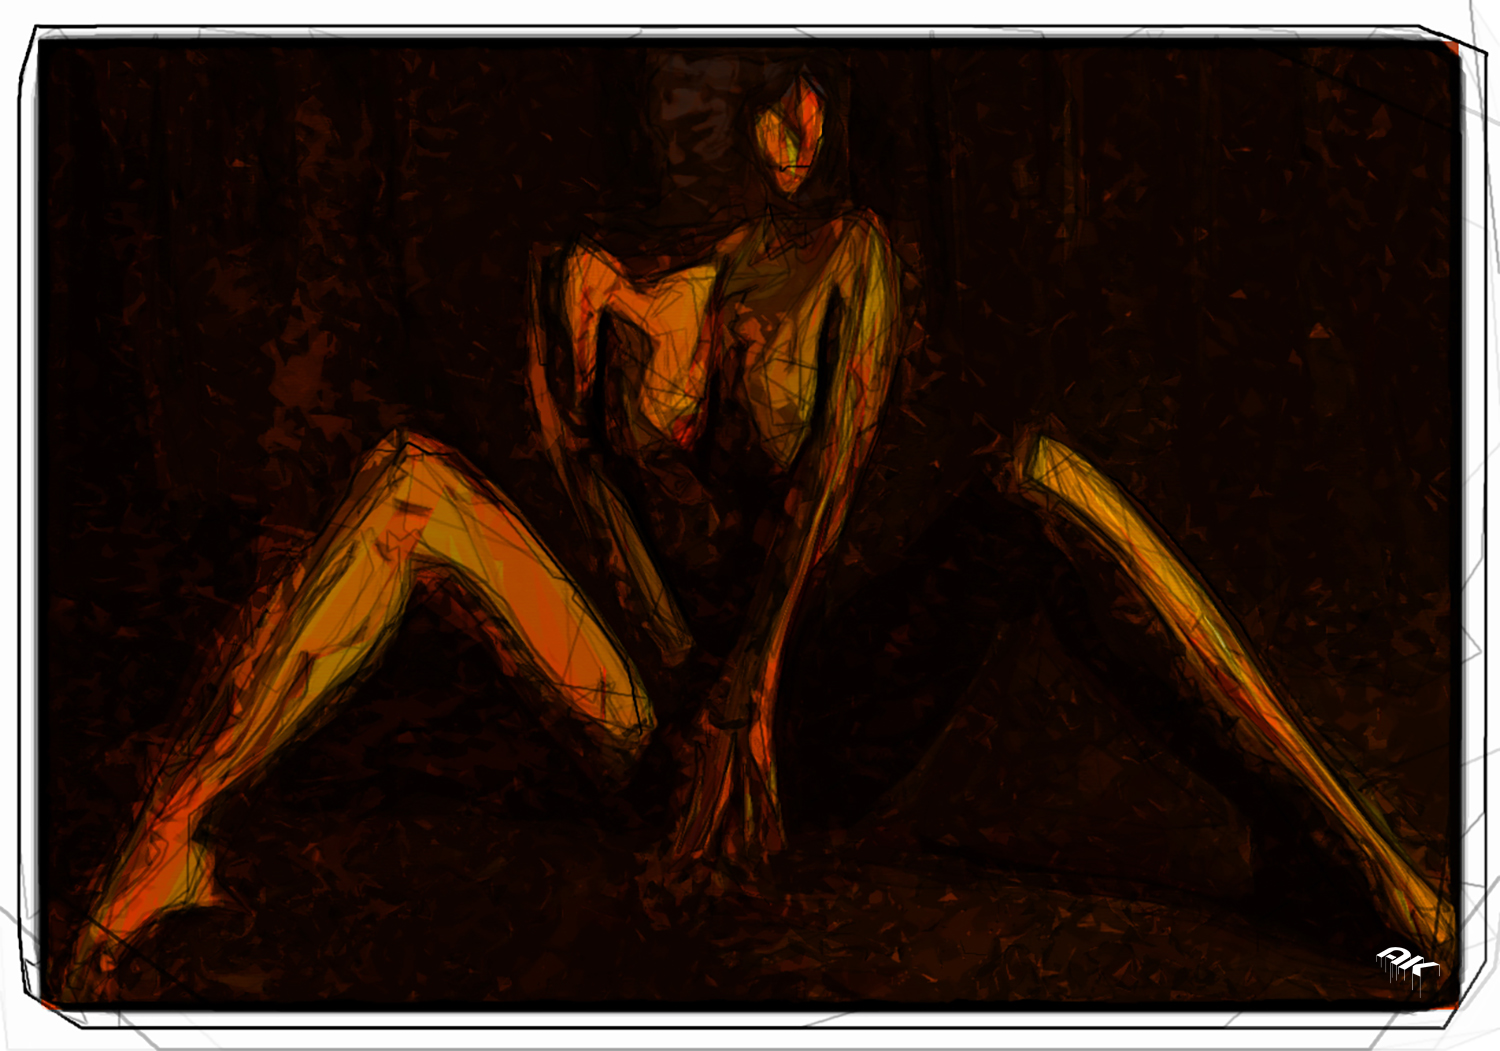 life-drawing-series-6-image-3-copyright-andrew-knutt